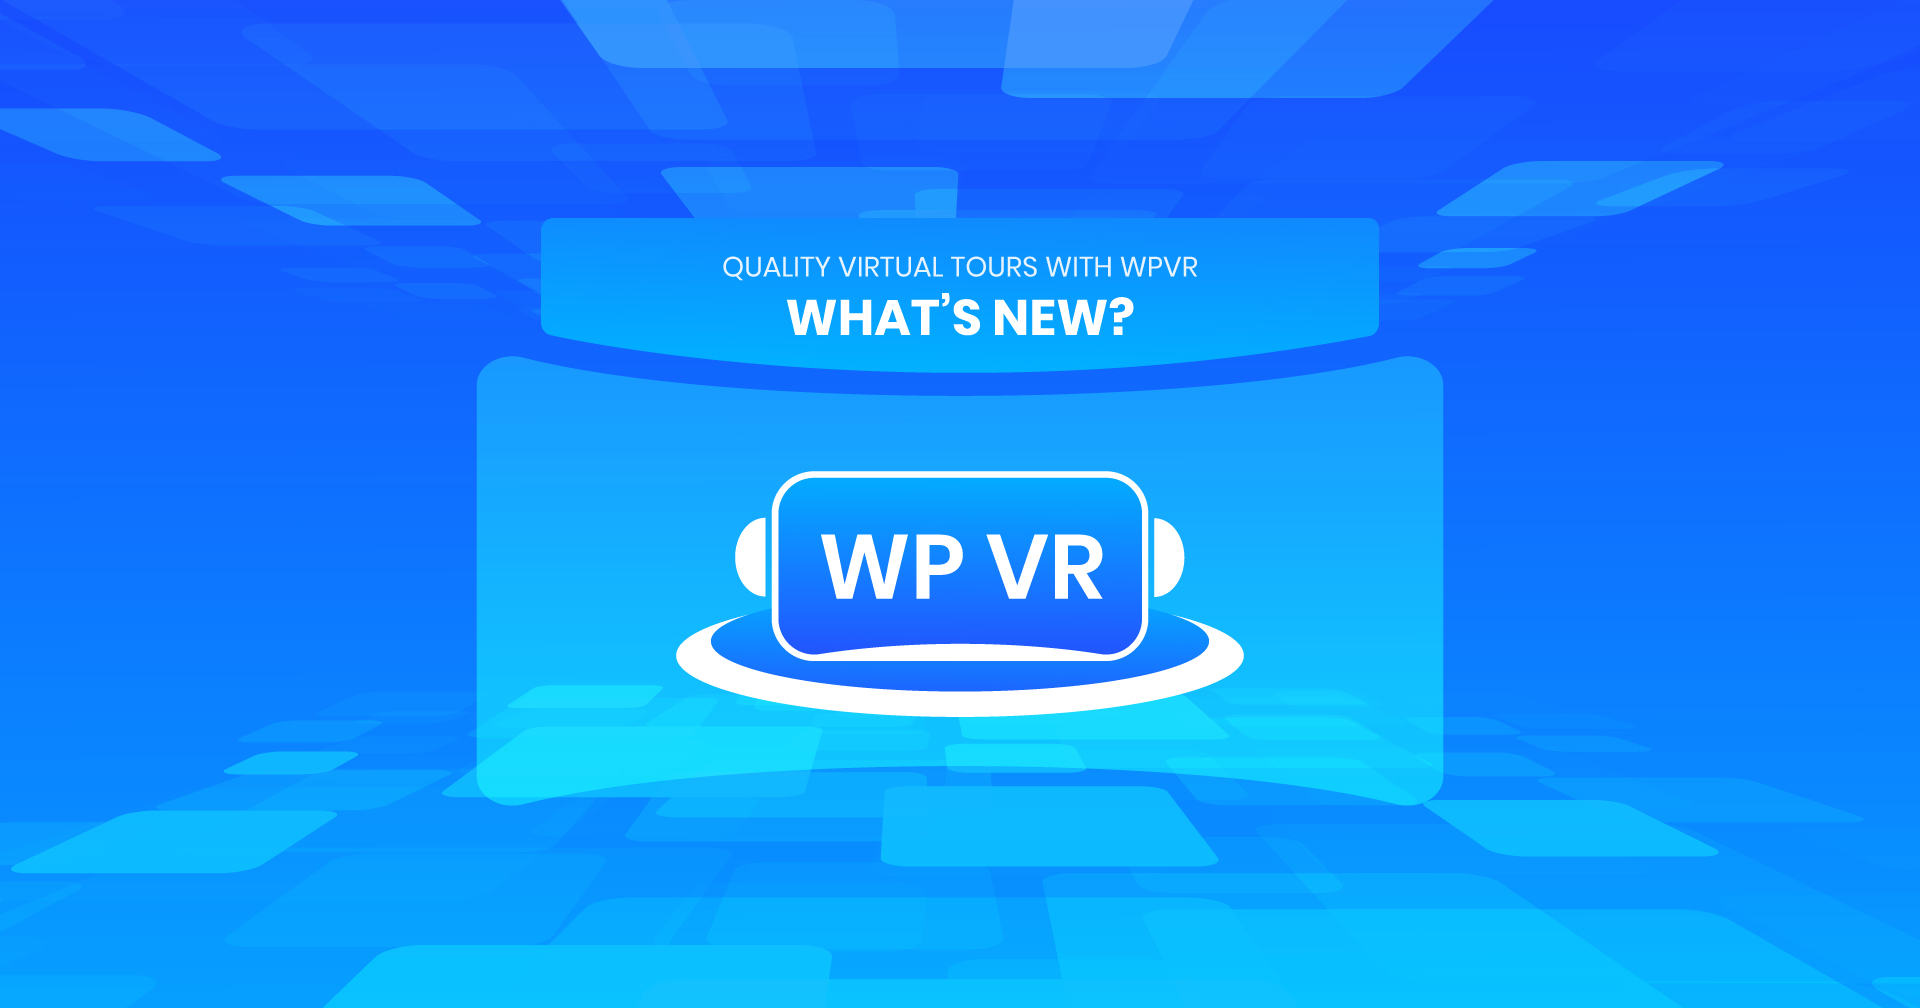 Quality Virtual Tours With WPVR